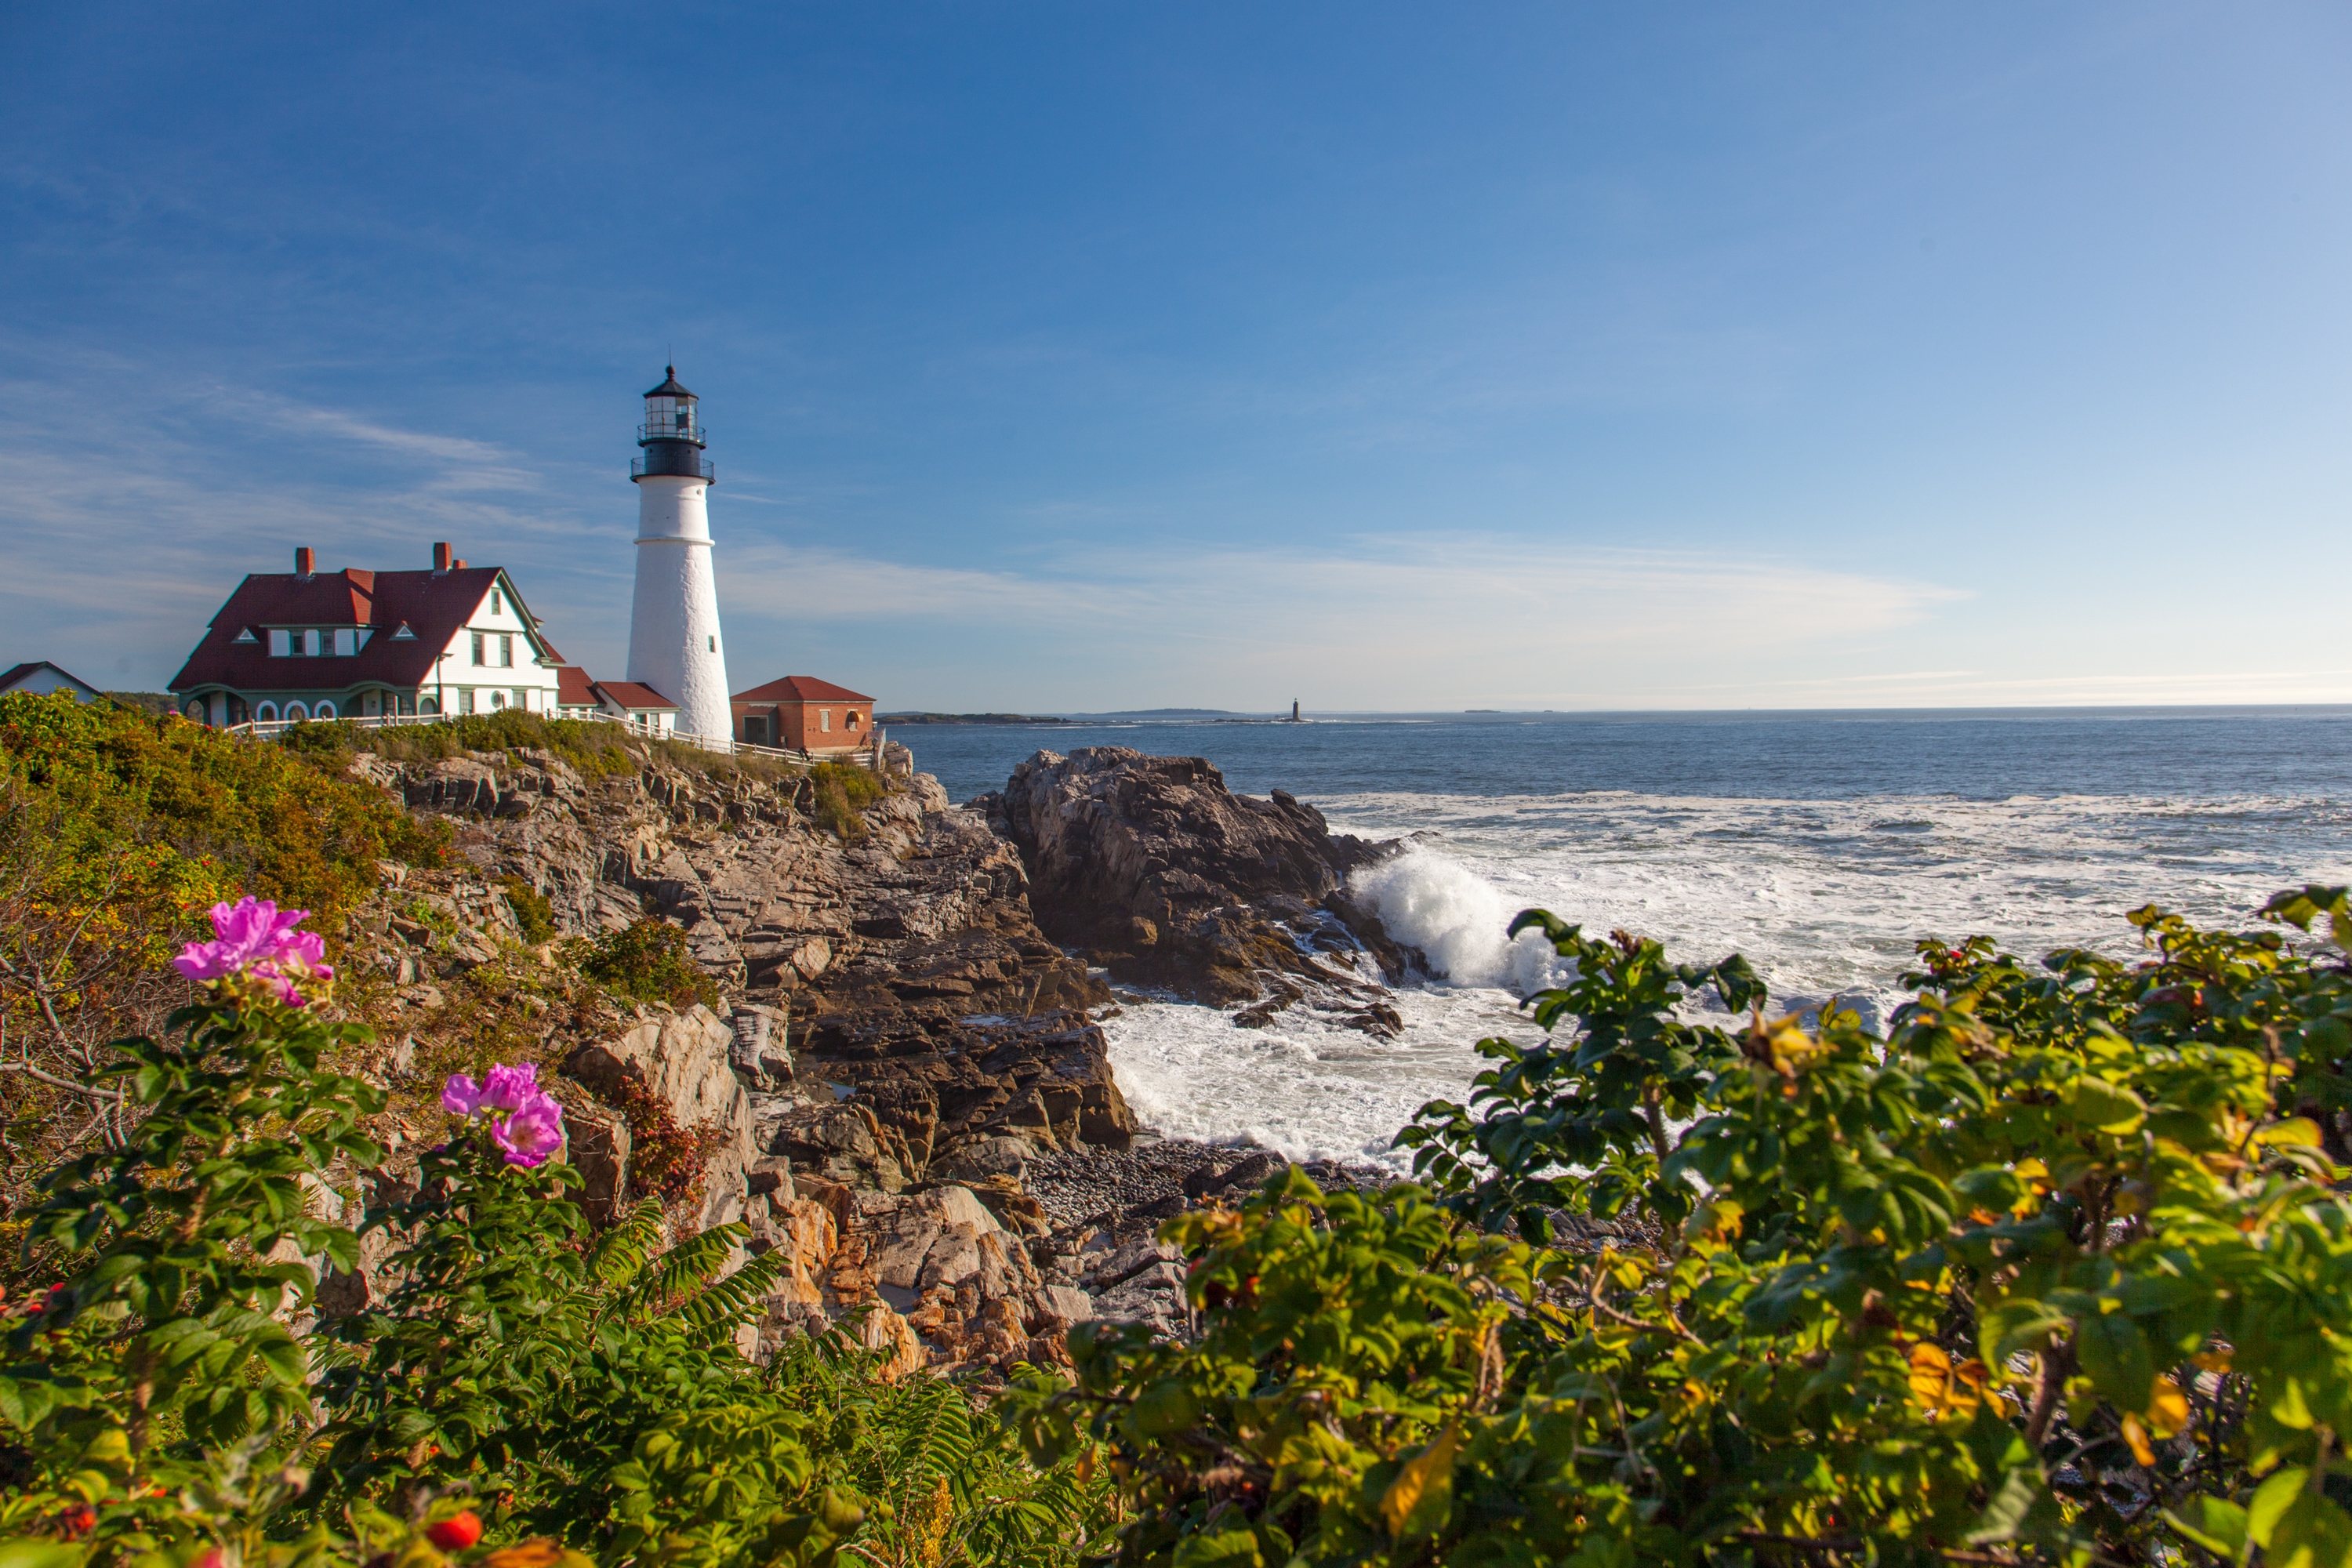 Cape Elizabeth - Brittany Ouzts